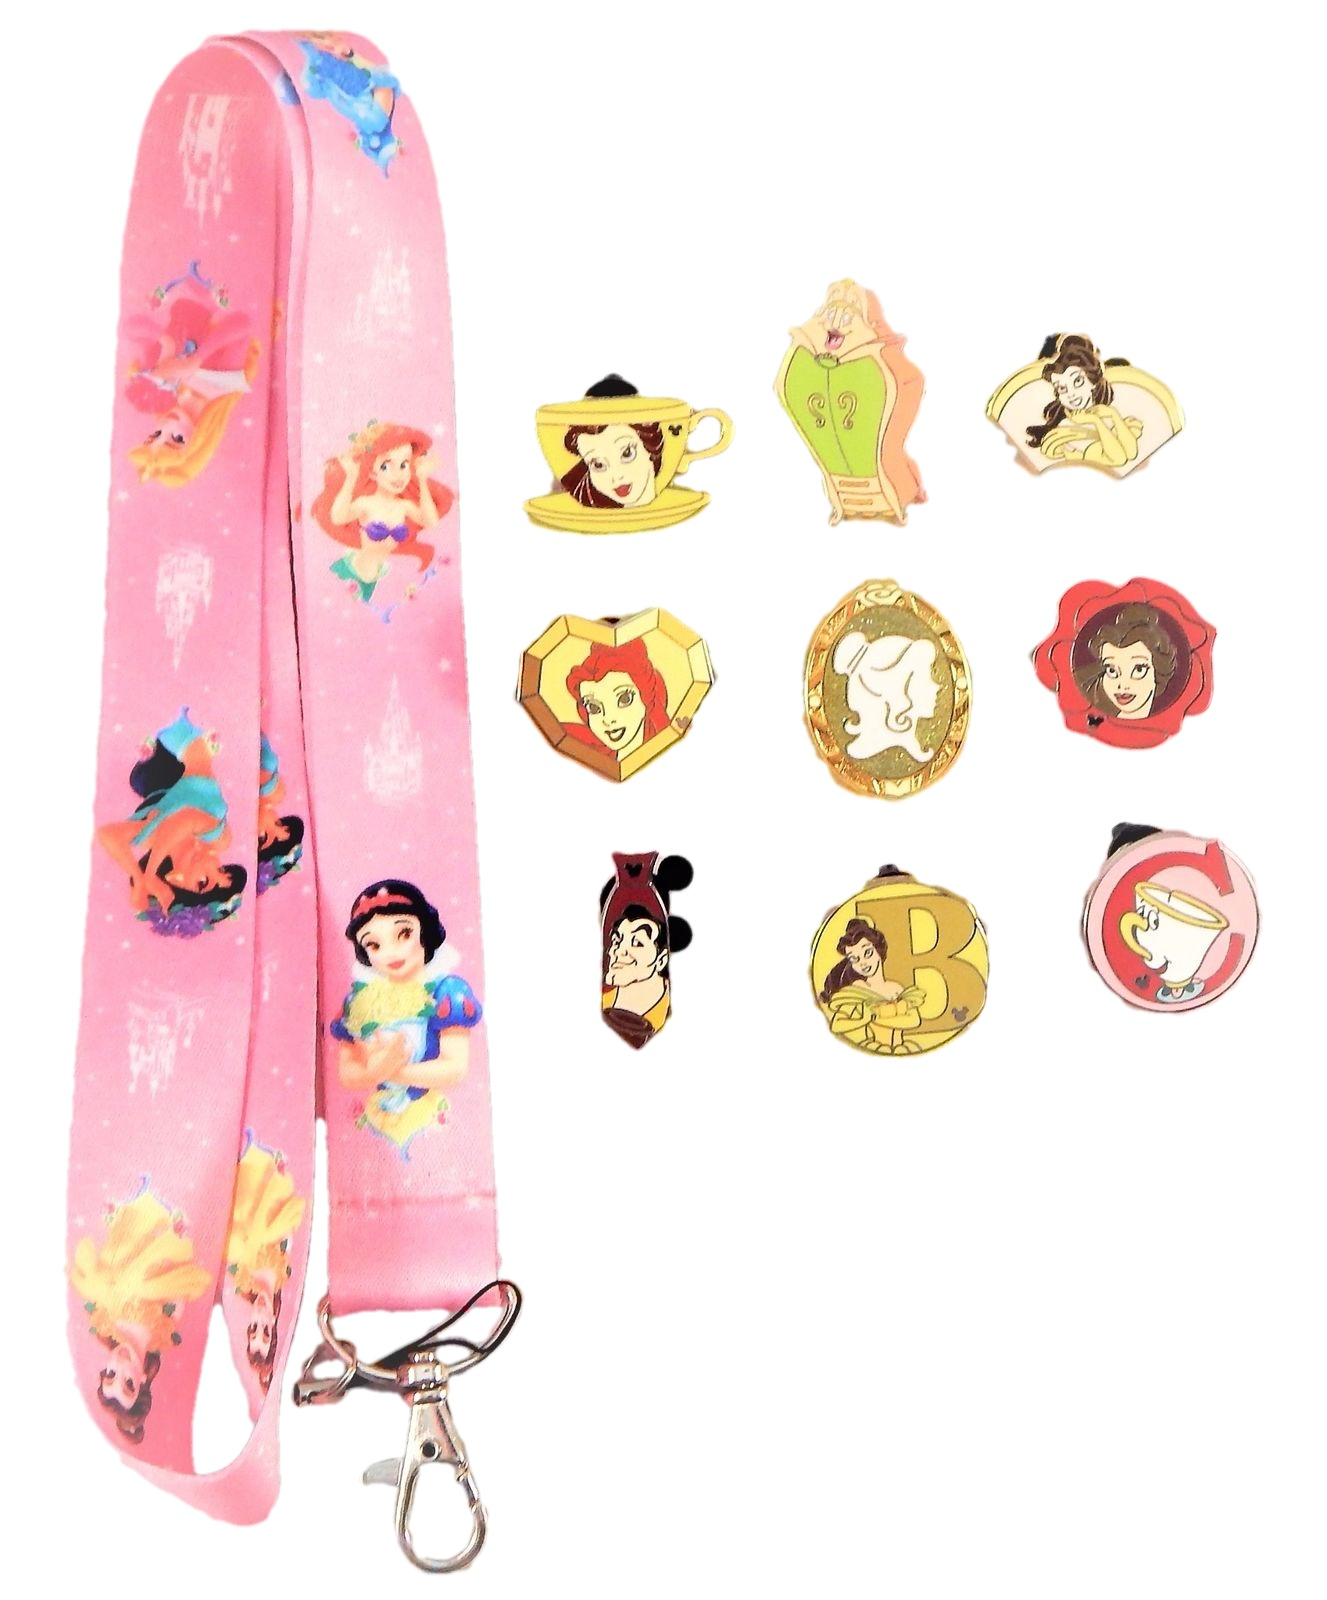 Pin Trading Night Beauty And The Beast Pin: Beauty And The Beast Starter Lanyard Set W/ 5